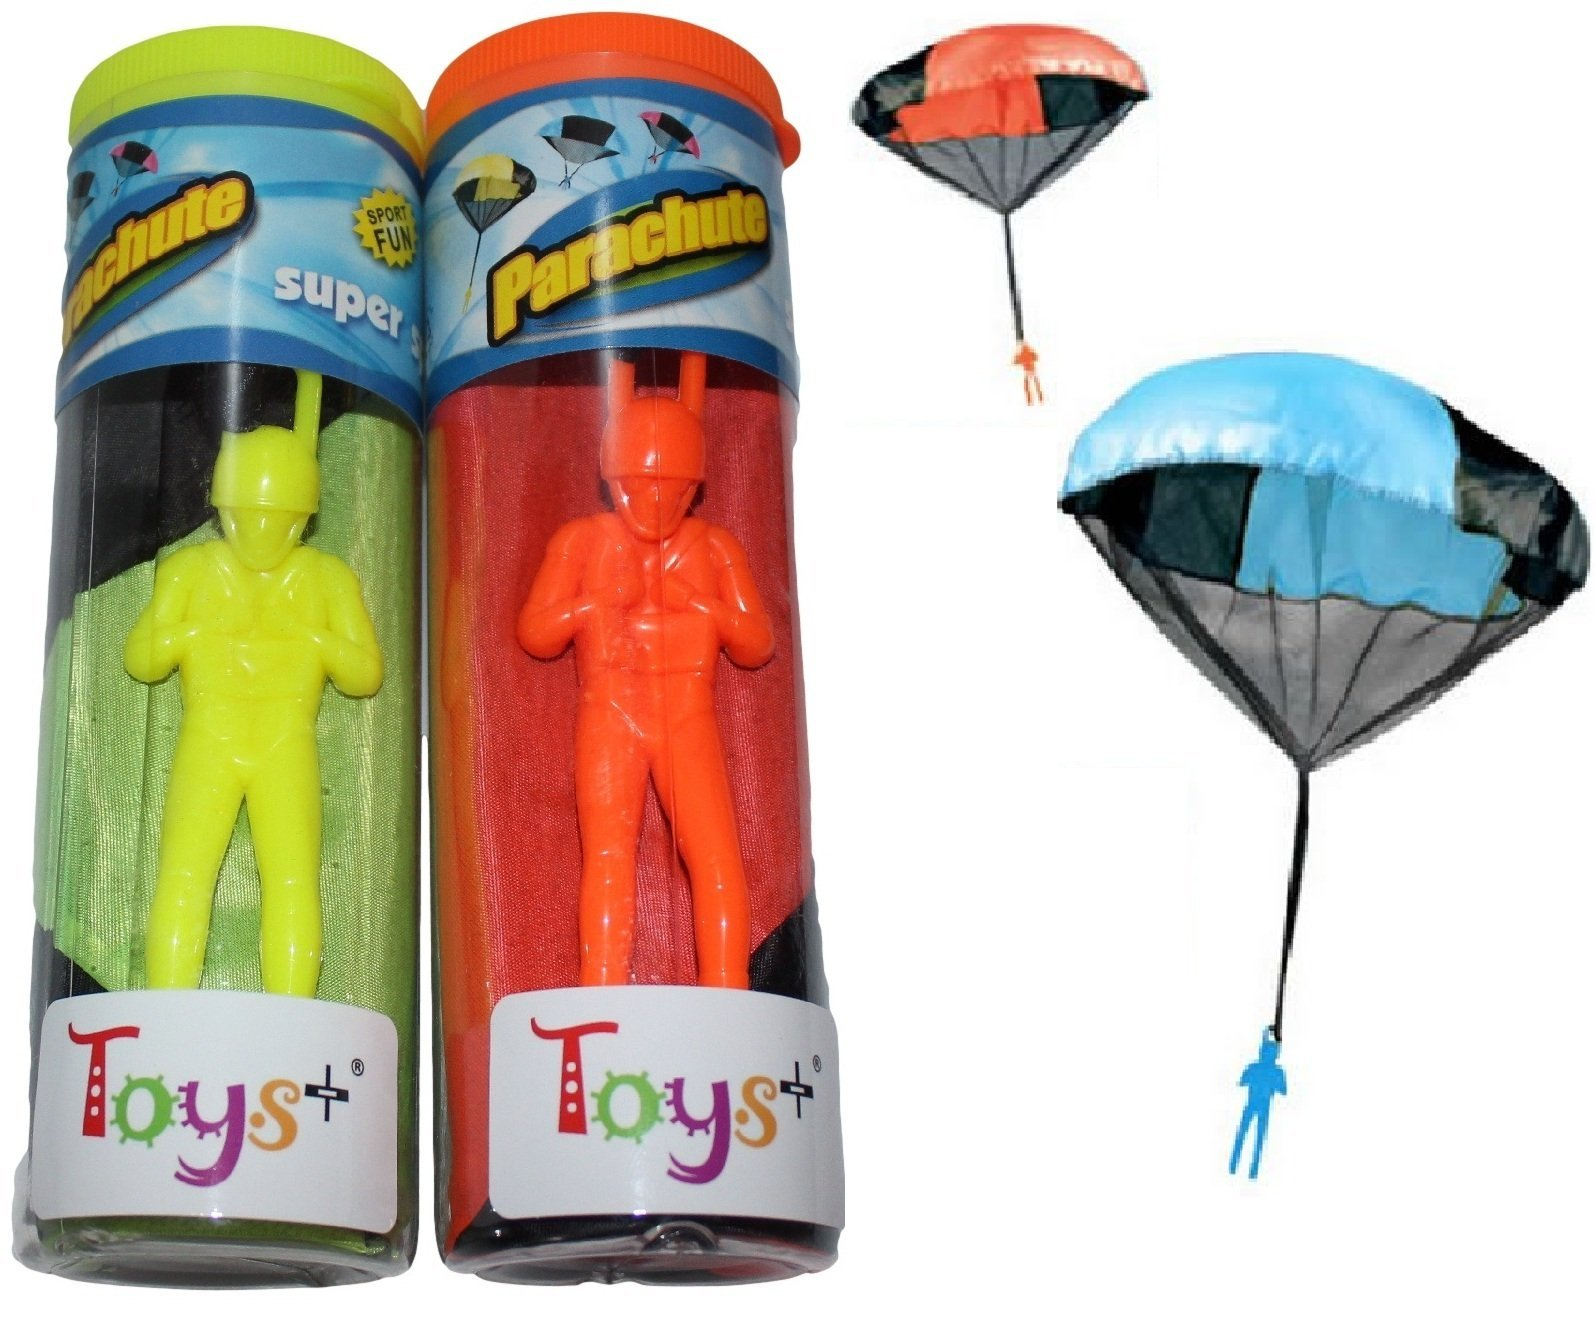 Toys+ 5 Piece Set Tangle Free Kinds Parachute Men For Children Skydiver Parachute Men (Colors and Styles May Vary)